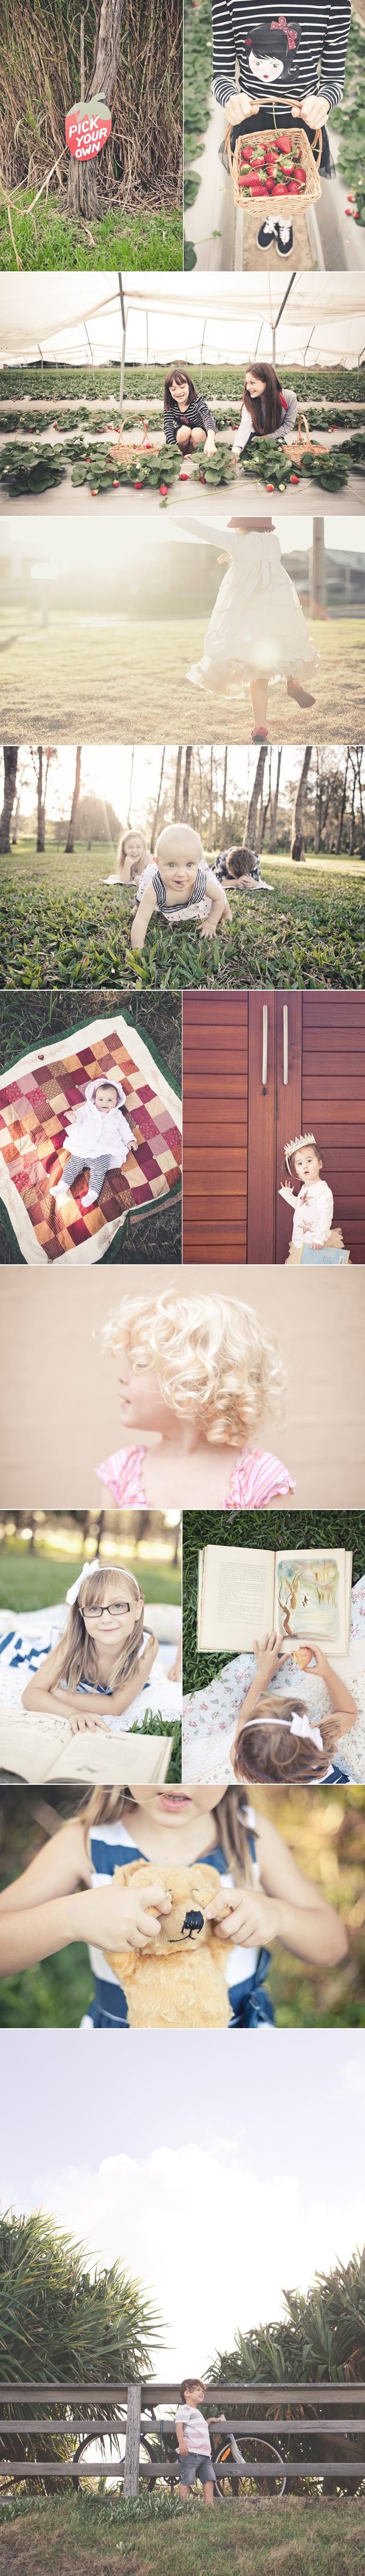 childrenportraits 01